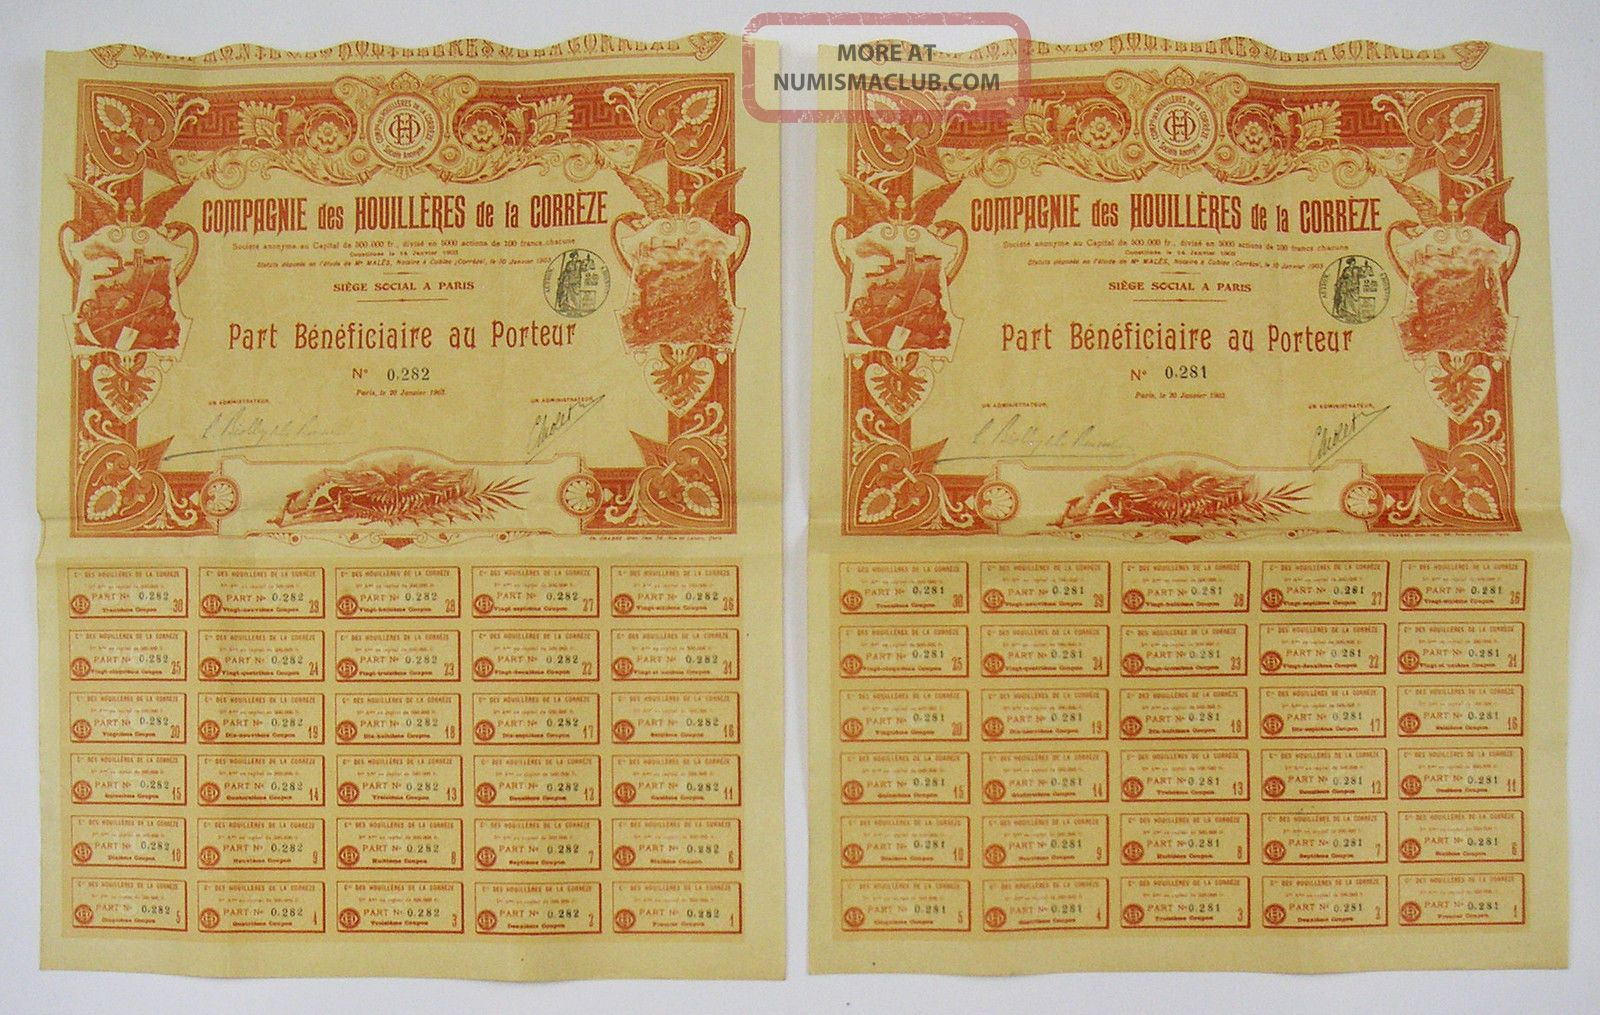 France - Compagnie Des Houilleres De Correze - Part Bénéficiaire (x2) Stocks & Bonds, Scripophily photo